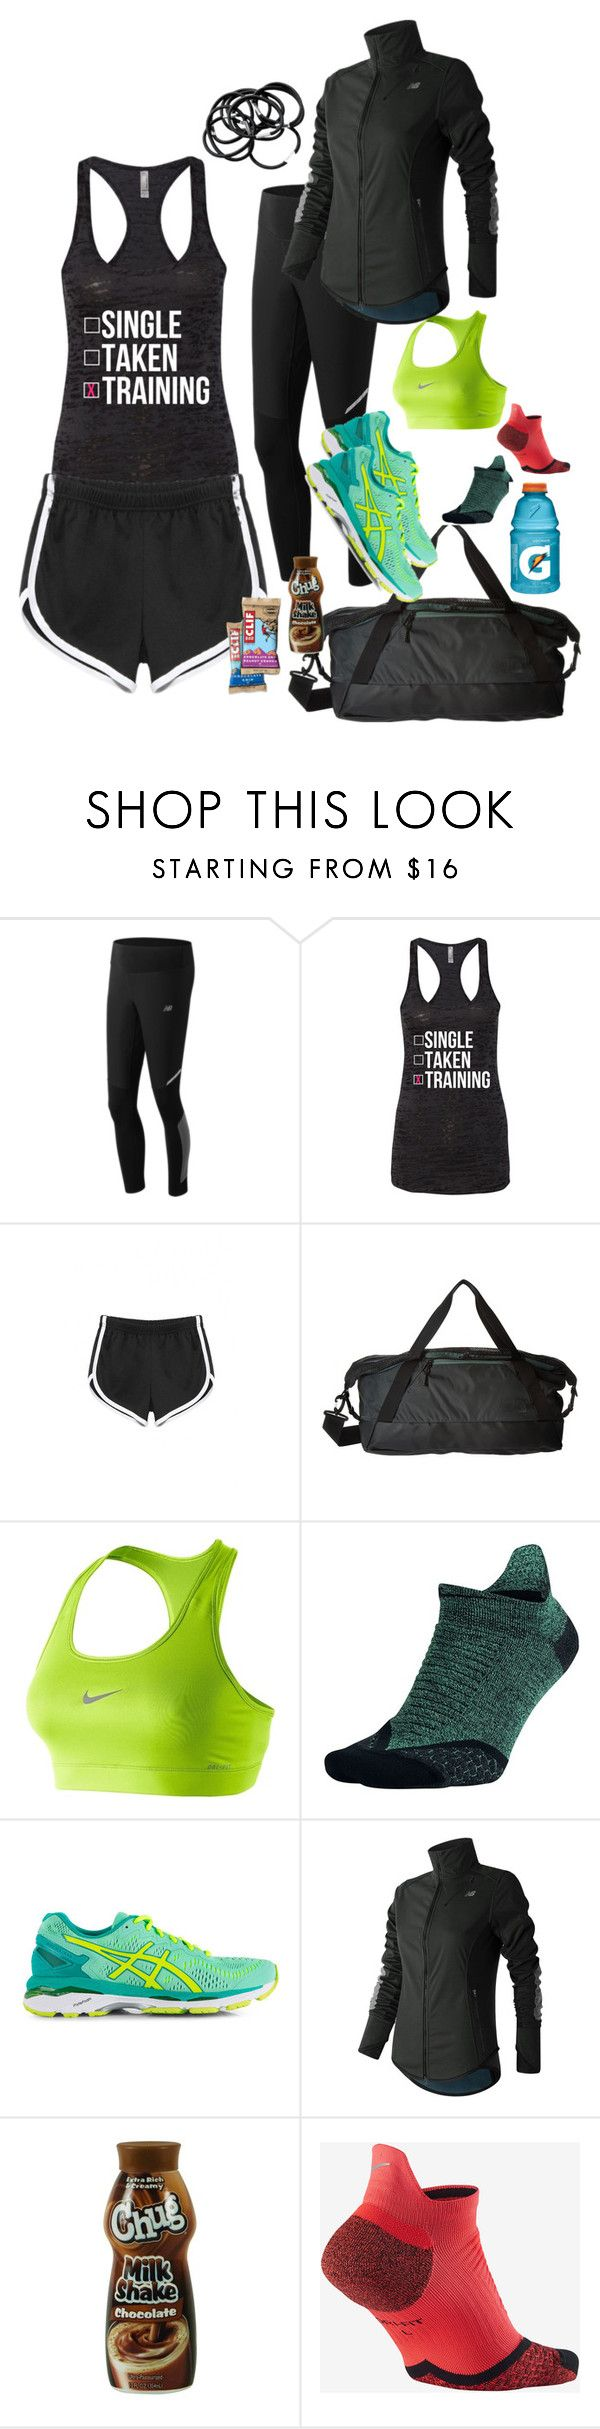 """Cross country meet"" by lonelyfruitsnak ❤ liked on Polyvore featuring New Balance, The North Face, NIKE, Asics, H&M and country"